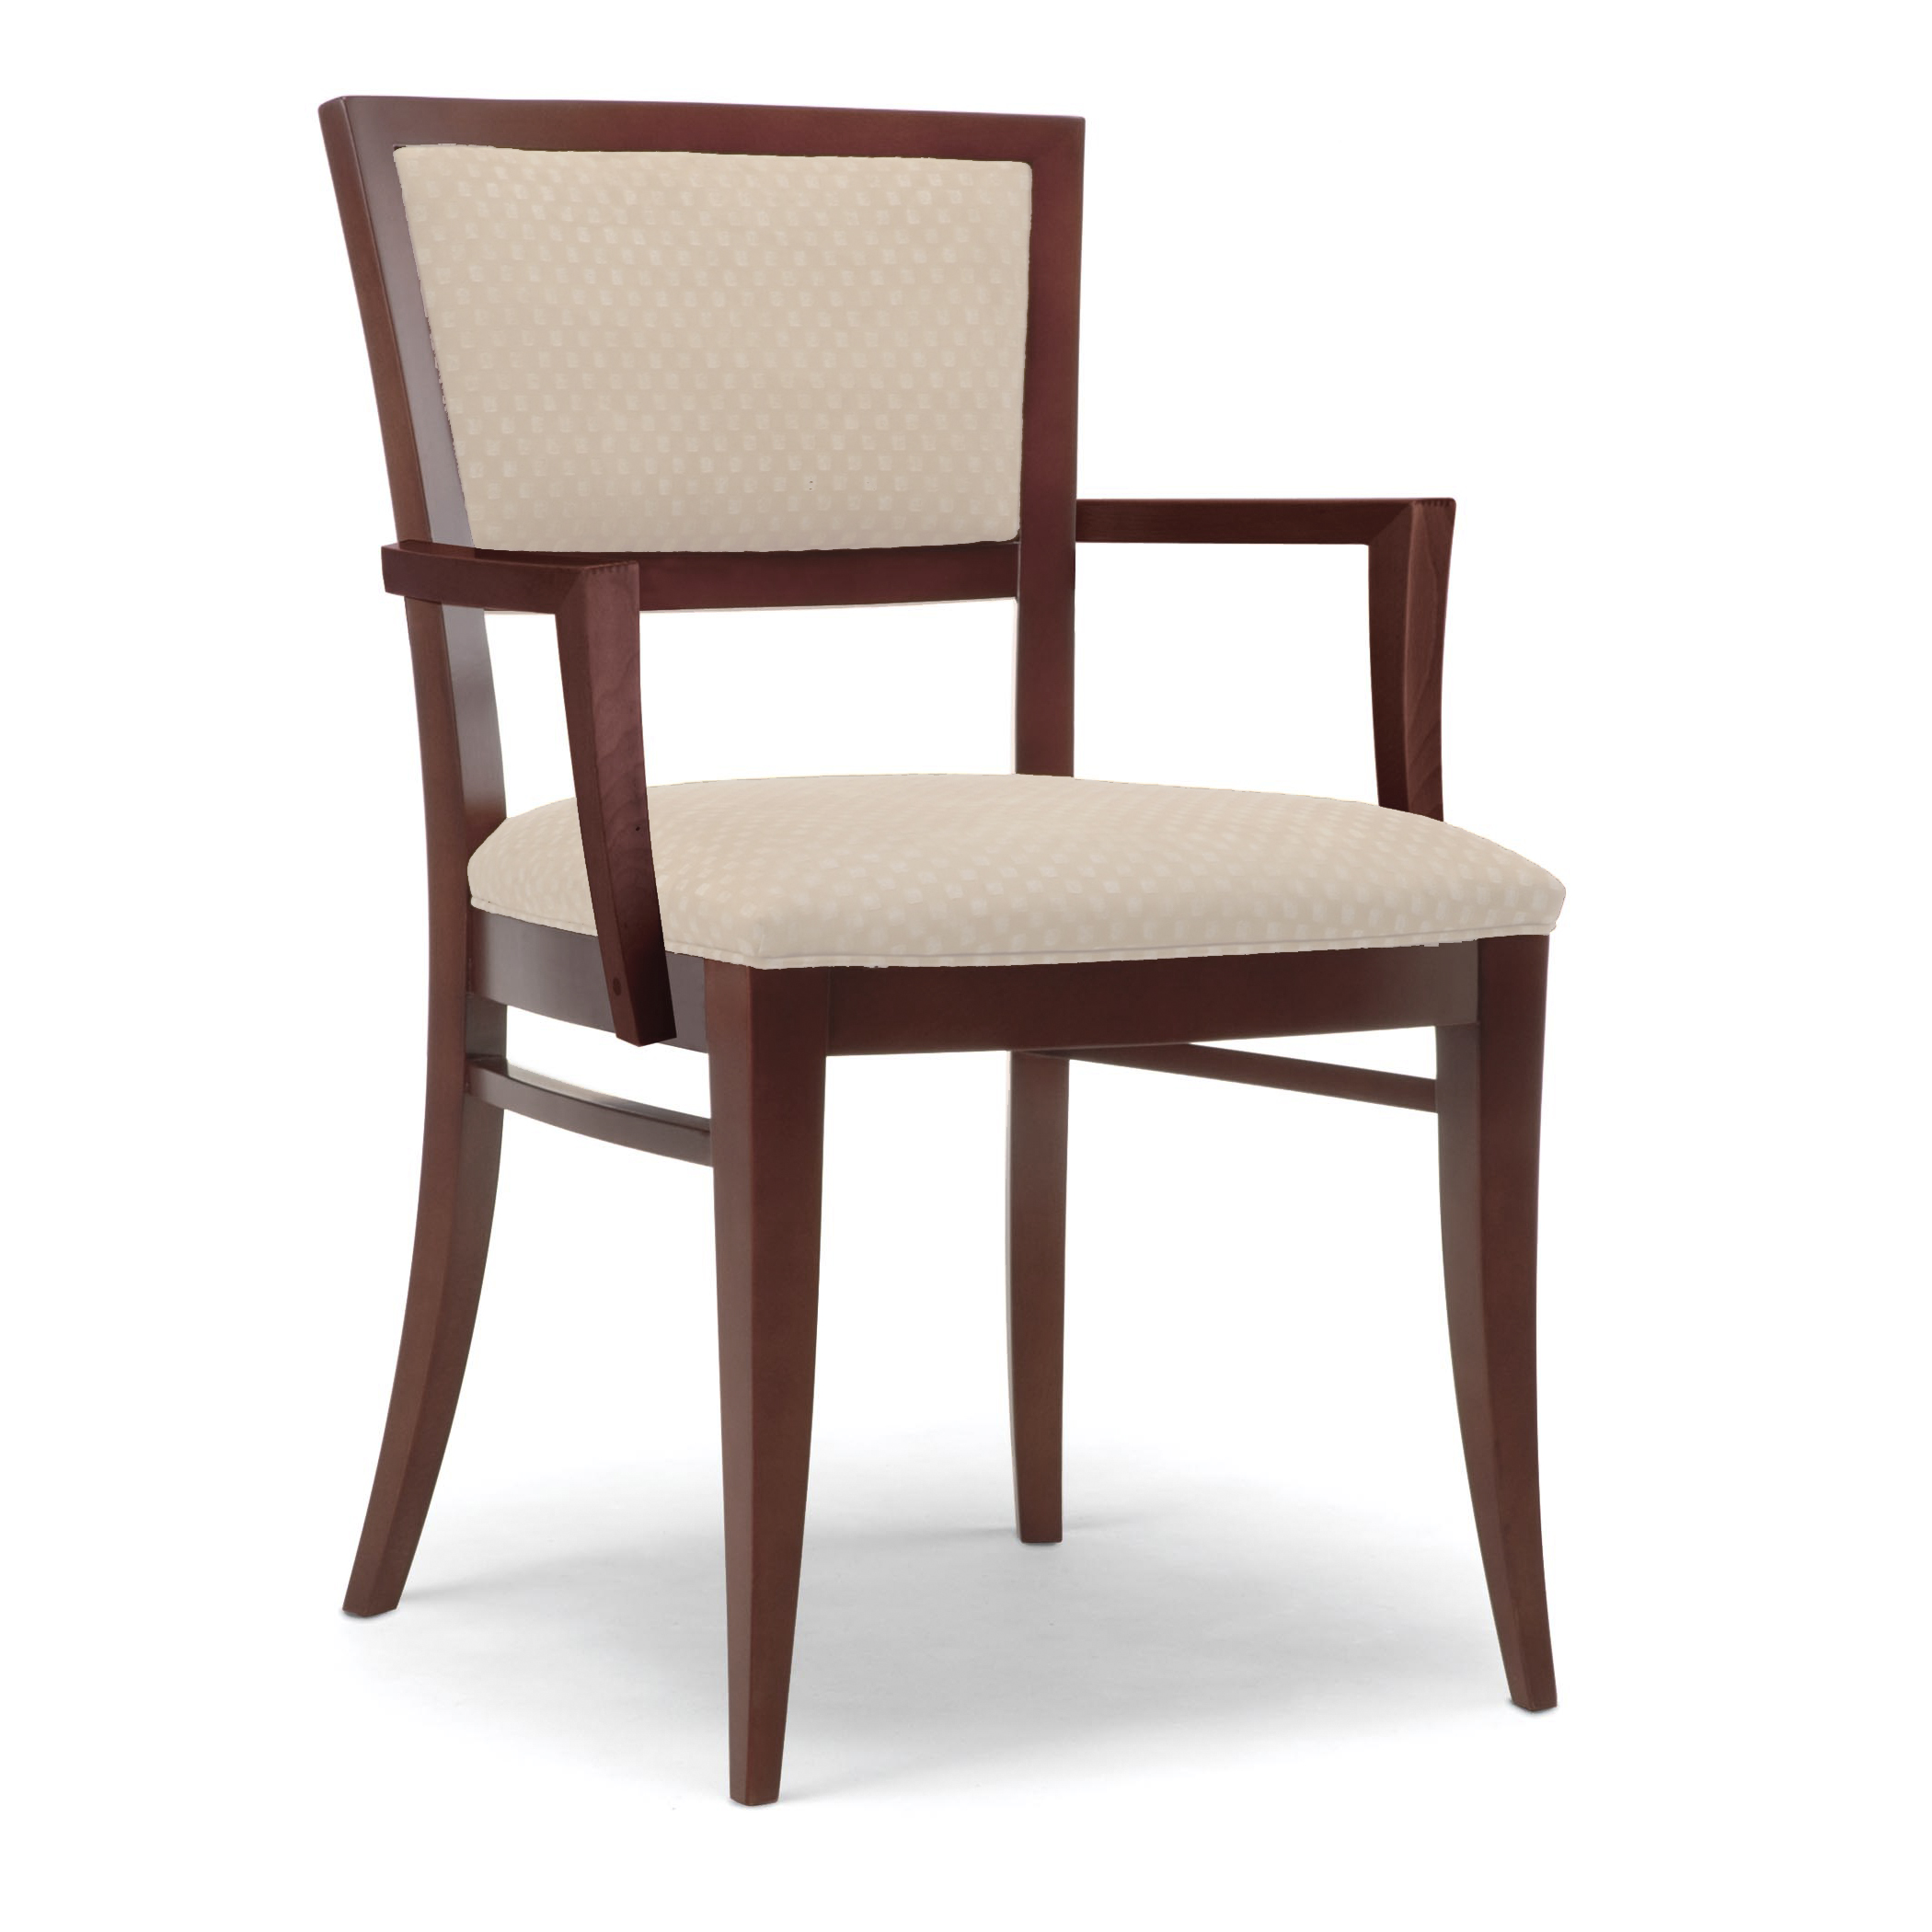 Charmant ... Wood Arm Chair. SHARE. LOW RES HI RES FAVORITES PRINT